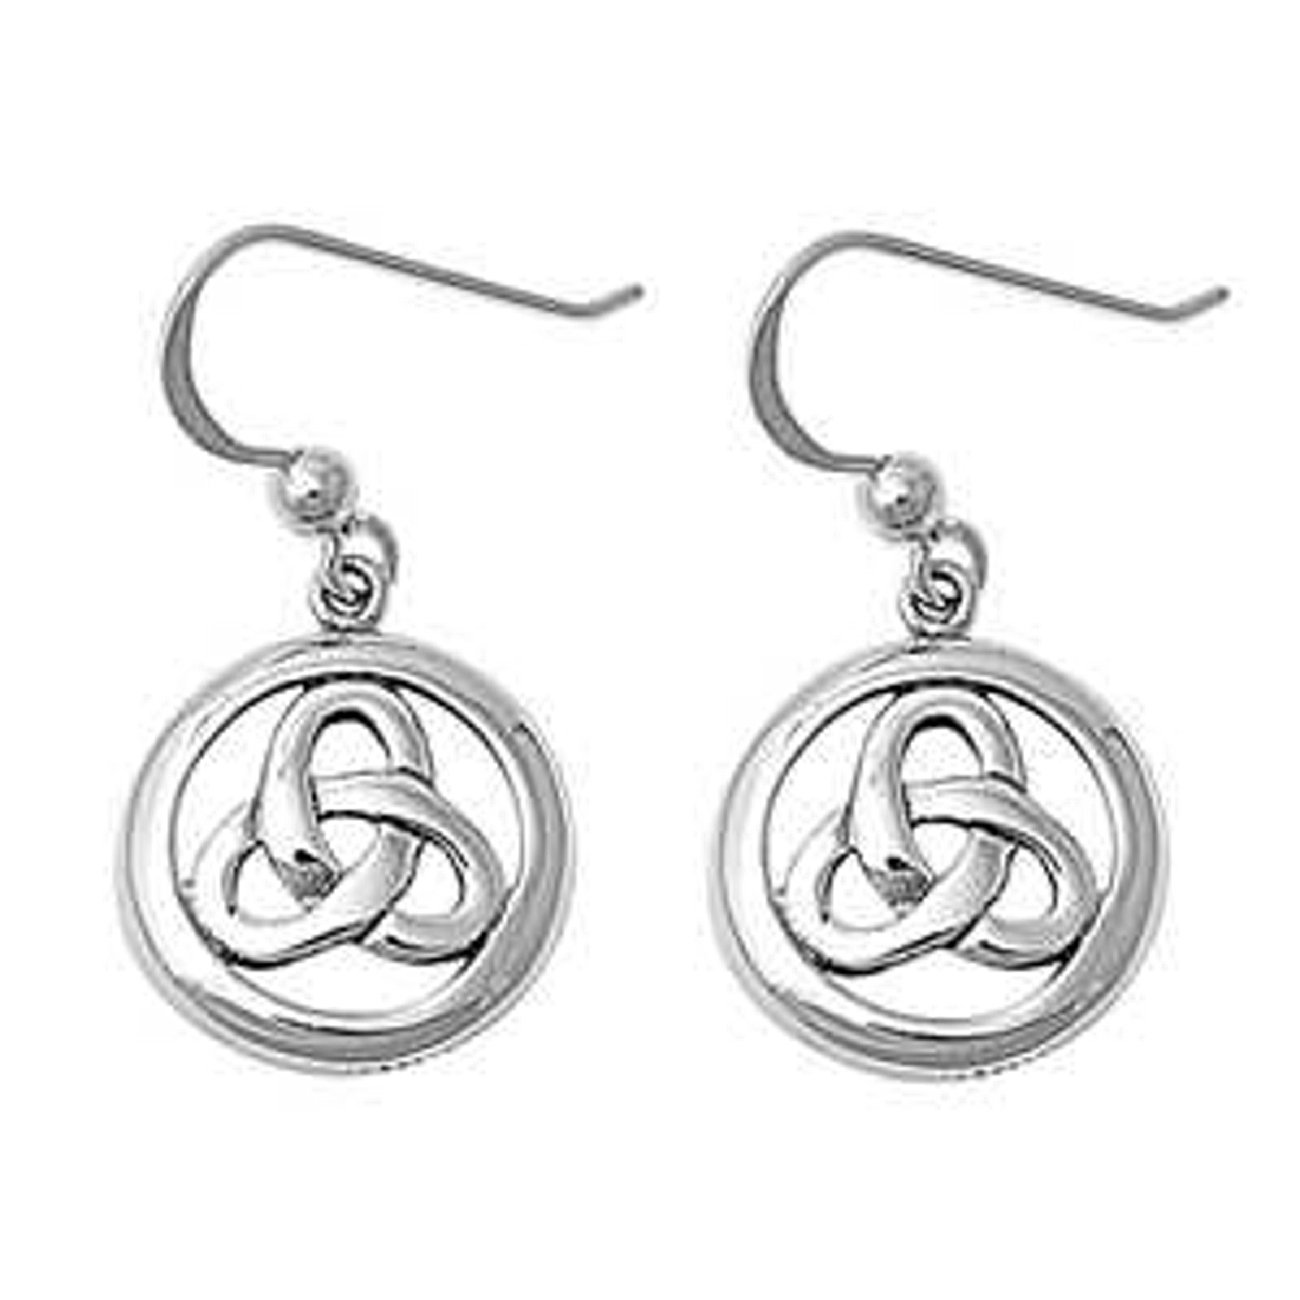 Sterling Silver 9//16 Celtic Trinity Knot Enclosed Within Circle Ring Drop Dangle Earrings